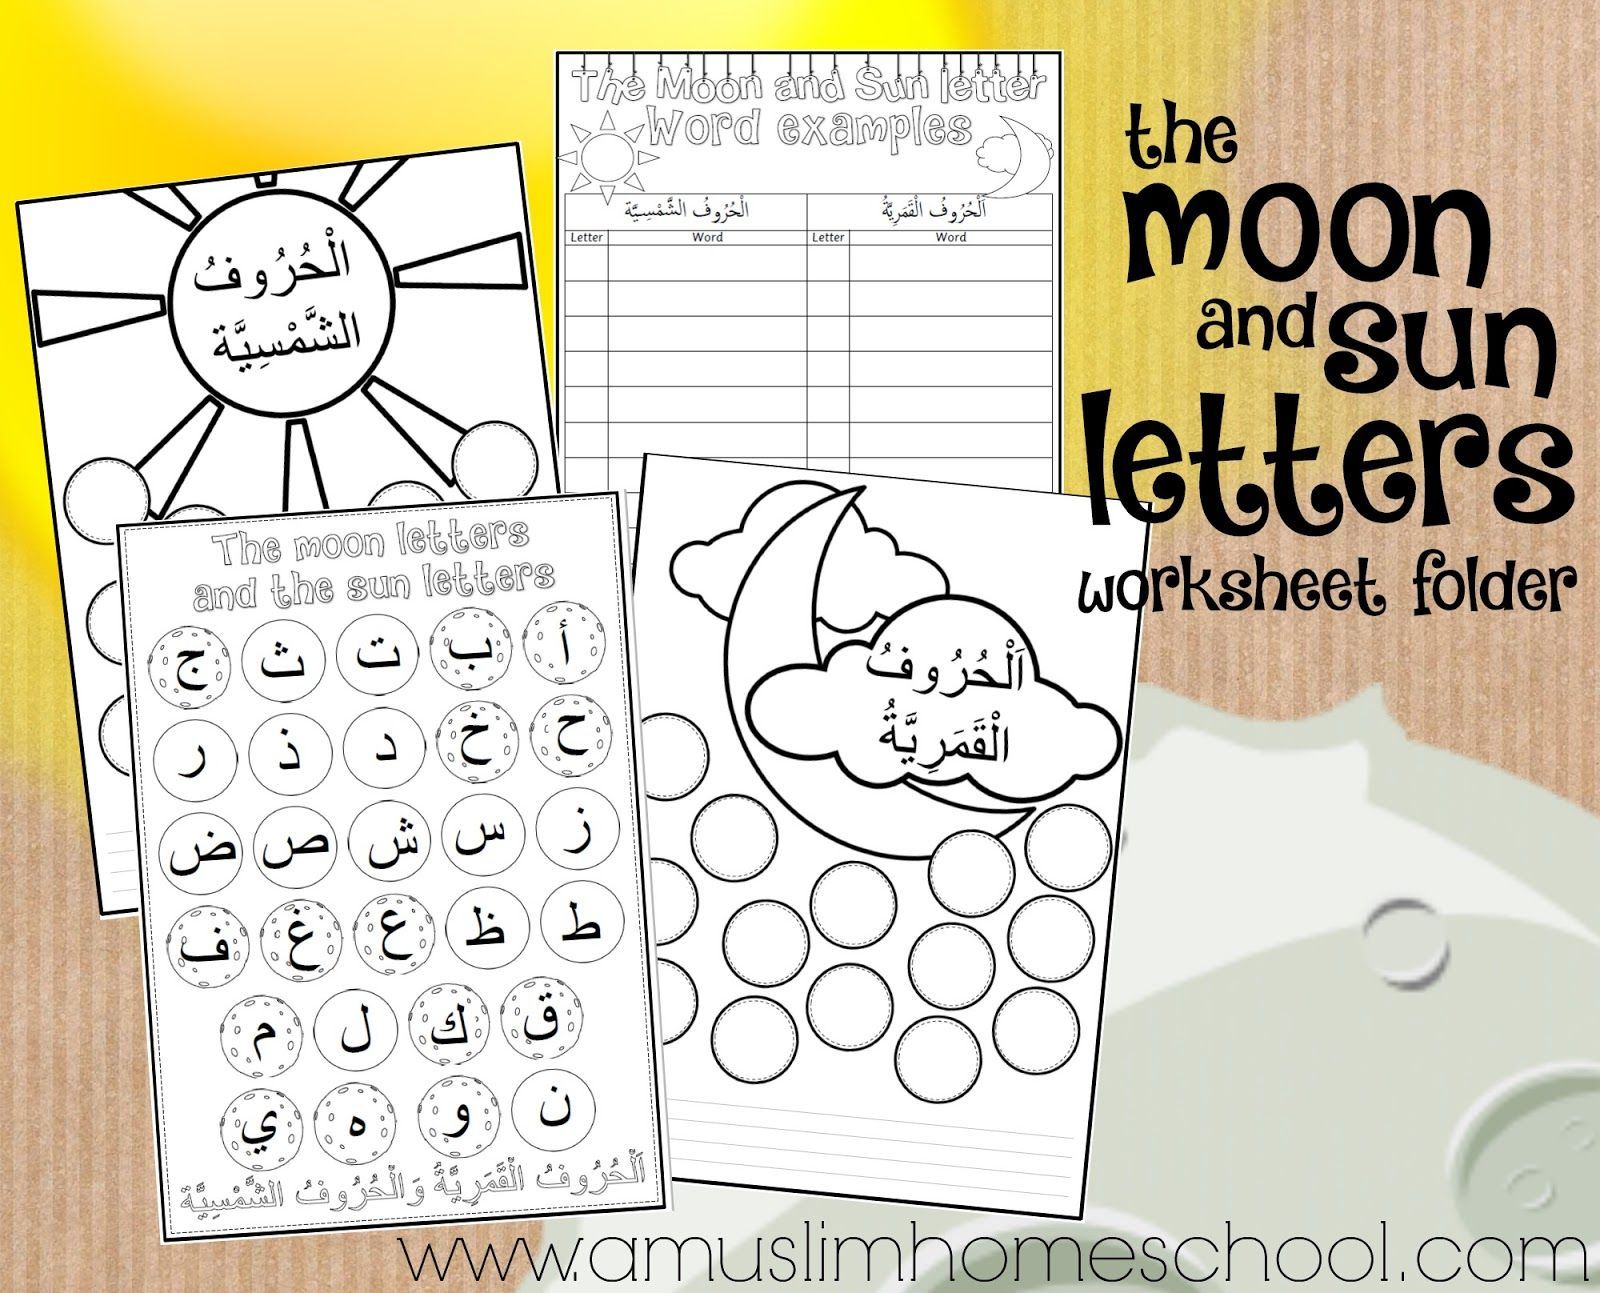 Printable Moon And Sun Letter Worksheet Folder For Kids